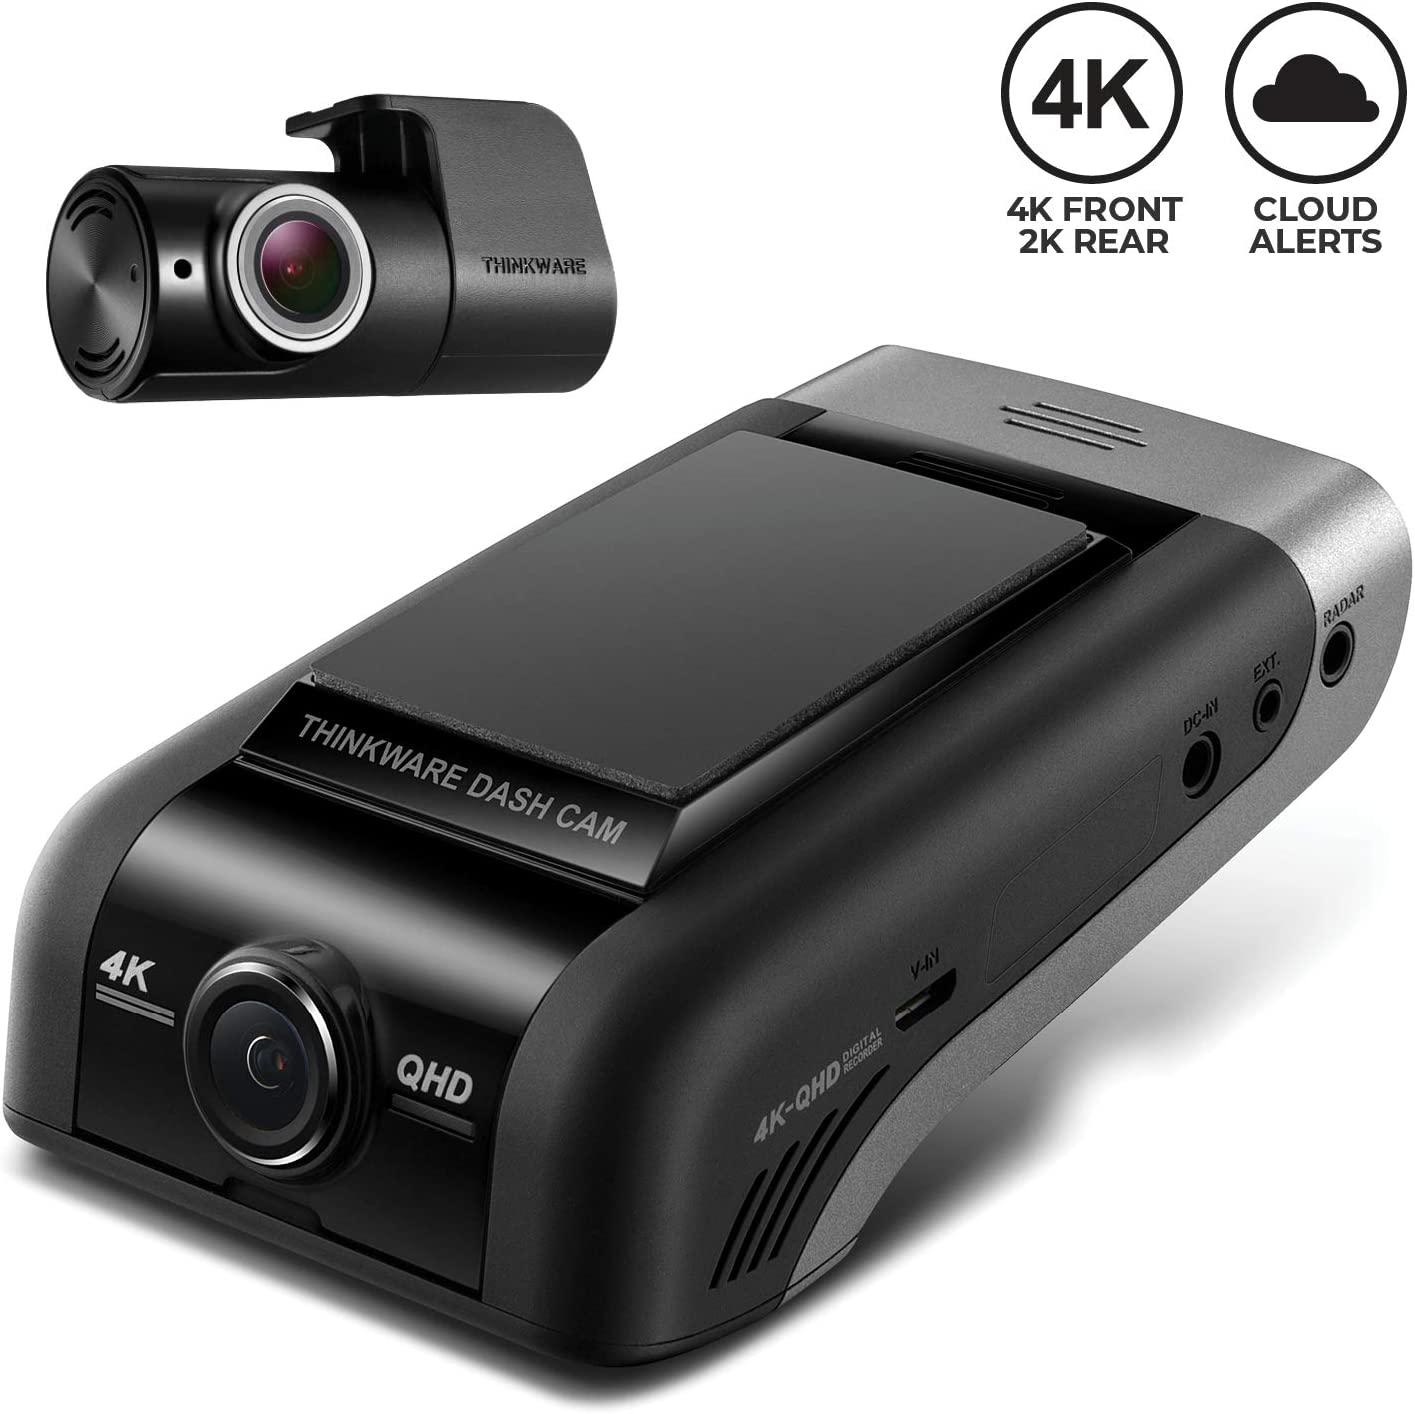 THINKWARE U1000 Flagship Dual Channel Dash Cam | 4K UHD 3840X2160 Front 2K QHD 2560X1440 Rear | Built-in WiFi, GPS, G-Sensor, Super Night Vision | Thinkware Cloud Ready | Advanced Parking Mode